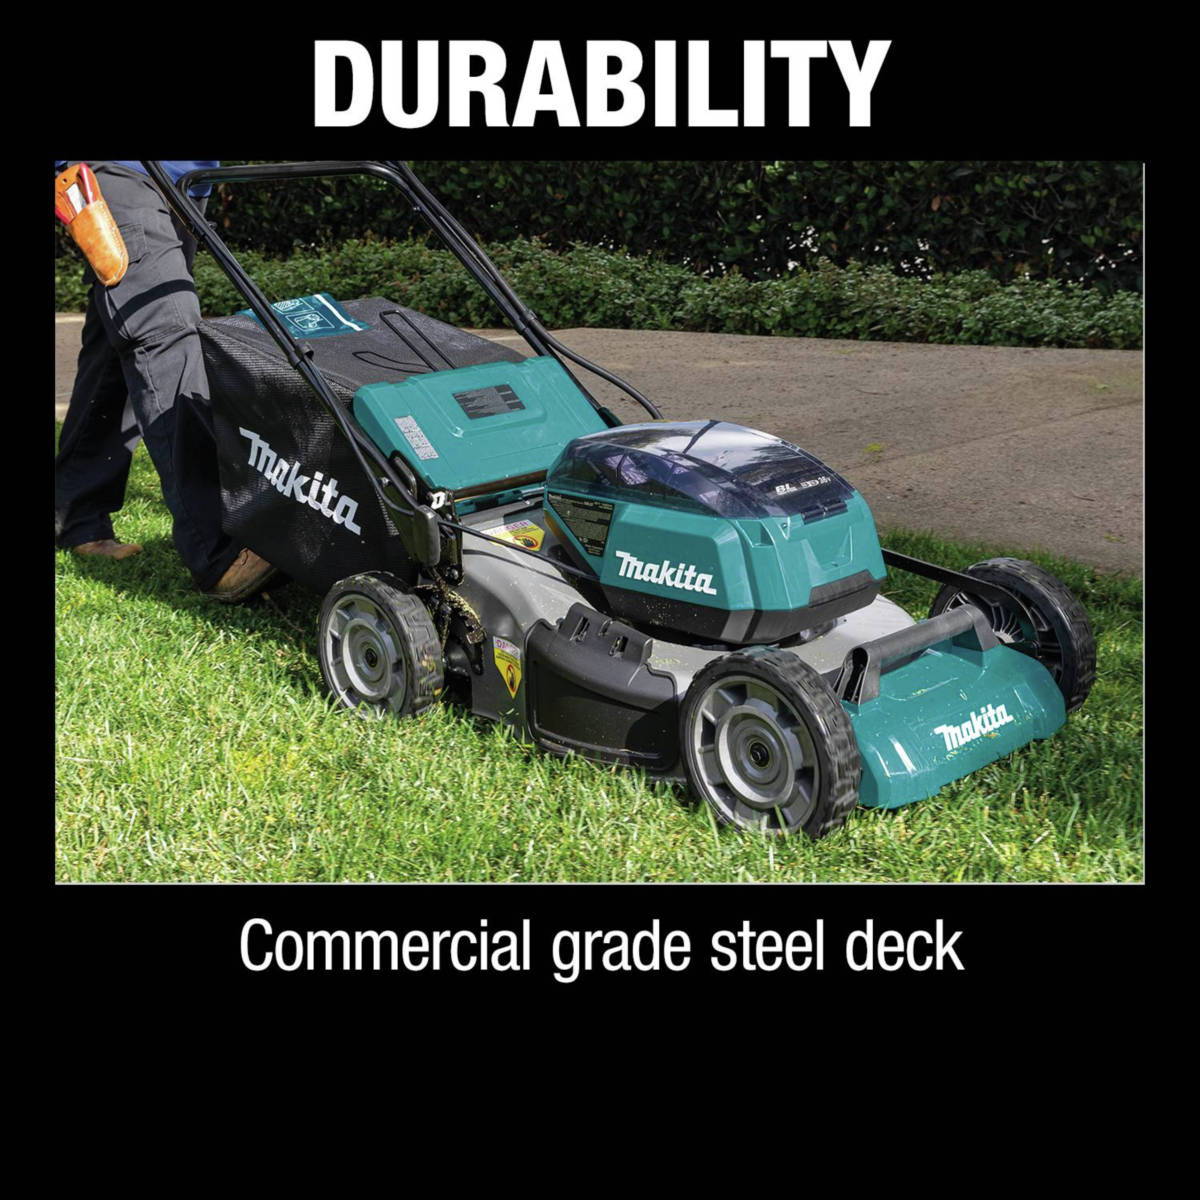 18V X2 (36V) LXT Lawn Mower features commercial grade steel deck